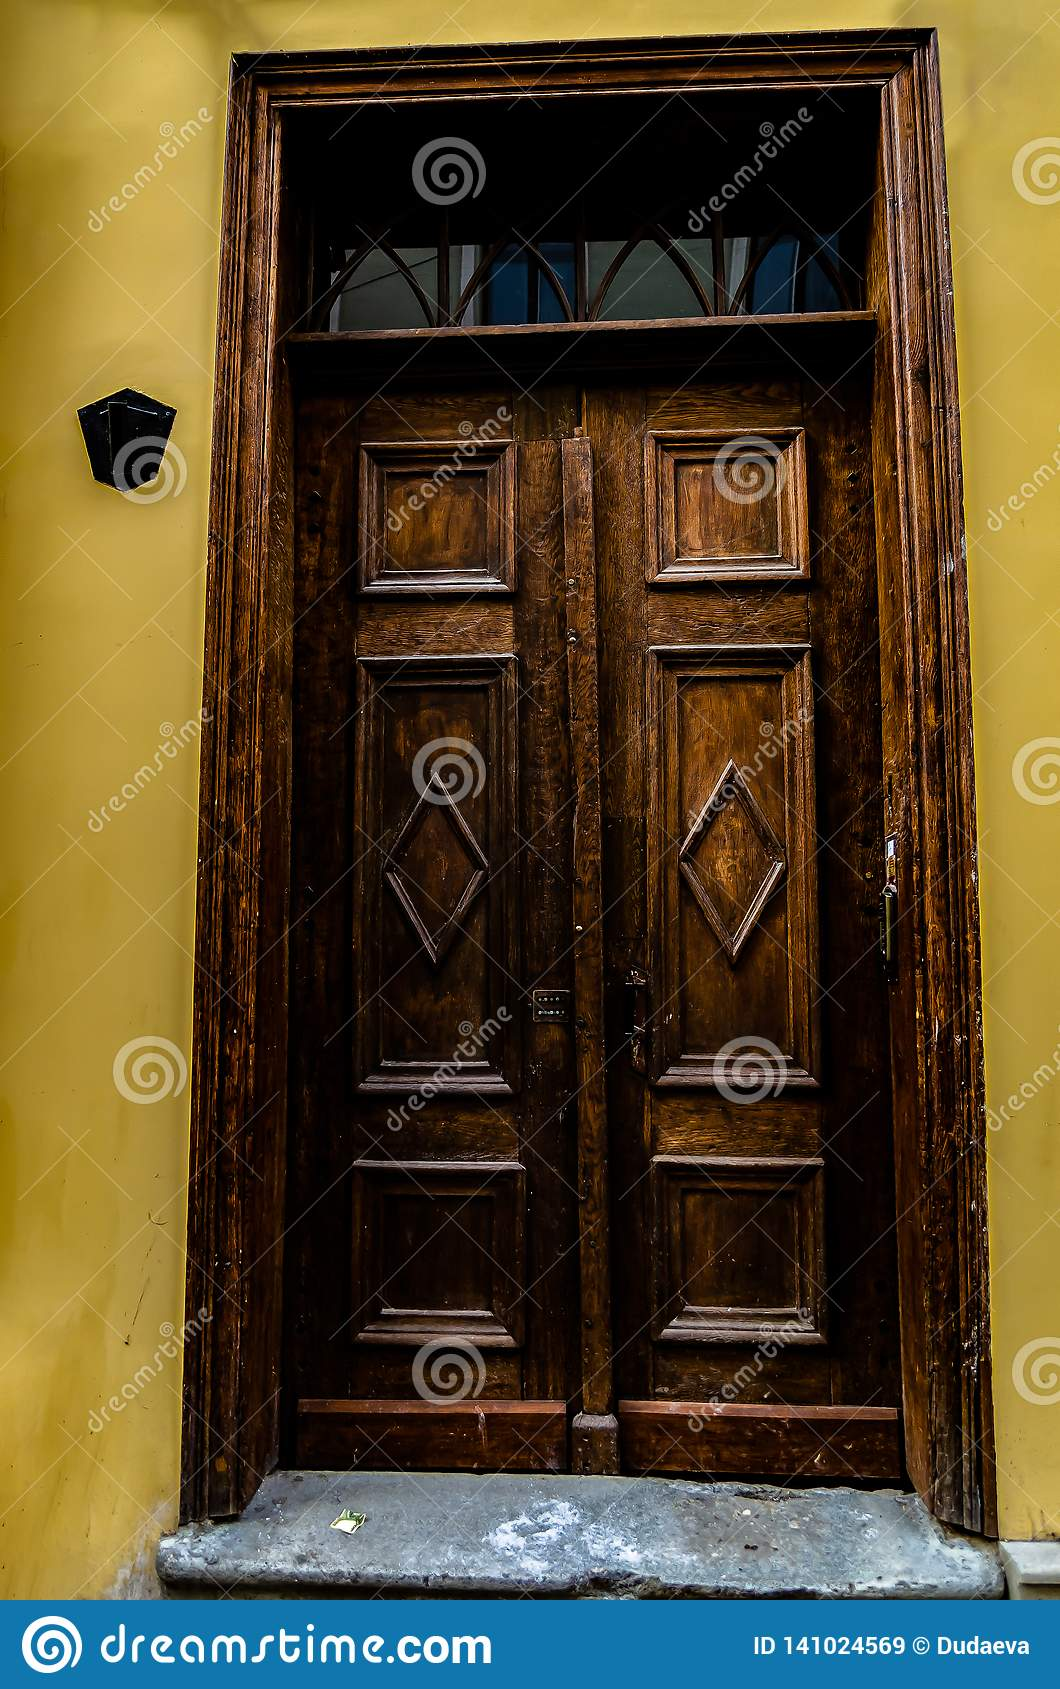 Beautiful Double Carved Wooden Front Doors Stock Image Image Of Europe Grunge 141024569